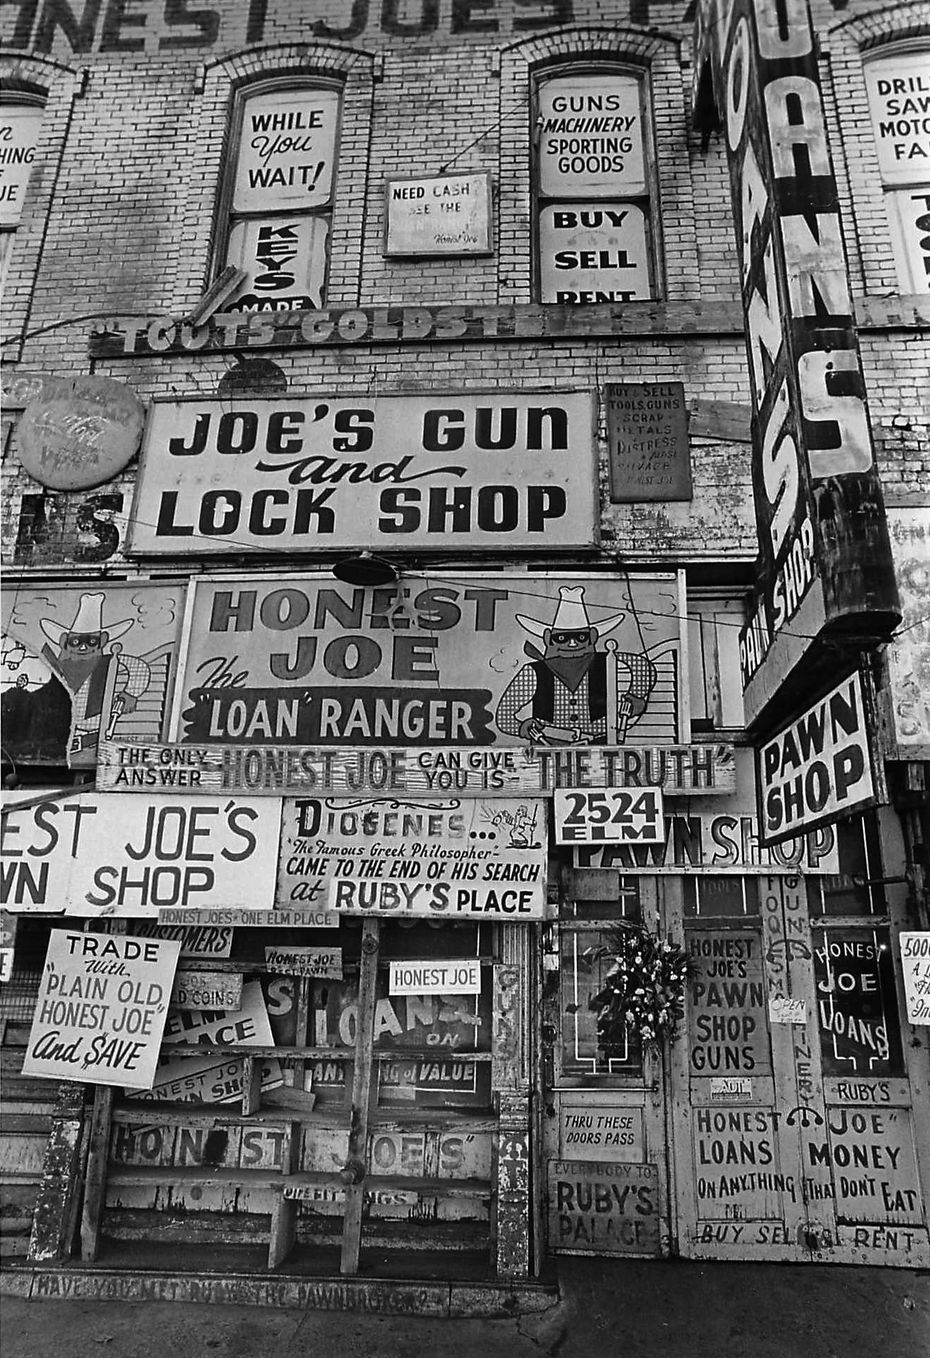 Sep. 8, 1972 - A funeral wreath hung on the door of Honest Joe's Pawn Shop at 2524 Elm St. in Deep Ellum after the death of owner Rubin Goldstein.